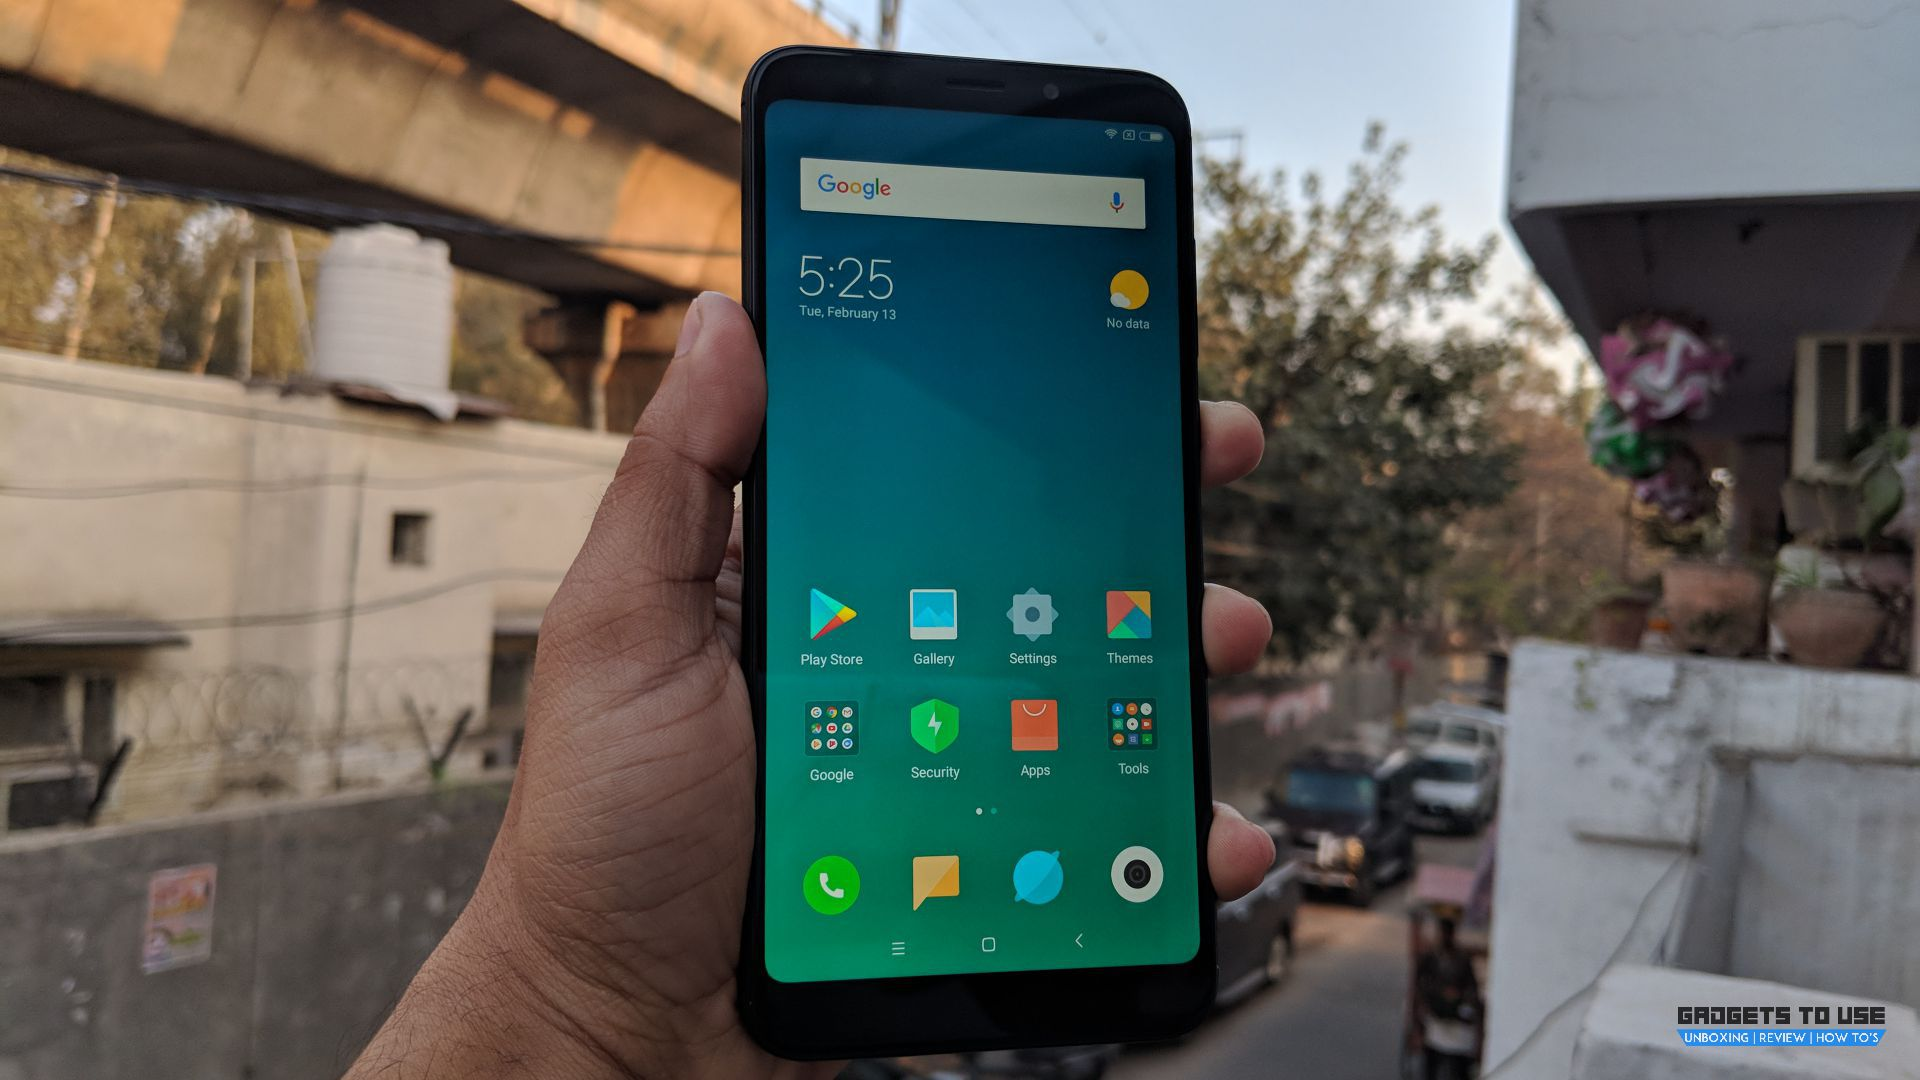 Xiaomi Redmi Note 5 Faq Pros Cons User Queries And Answers Plus Ram 3 Rom 32 Tam Black Answer The Sports A 599 Inch 25d Curved Glass Ips Lcd Display Device Comes With Screen Resolution Of 2160 X 1080 Pixels